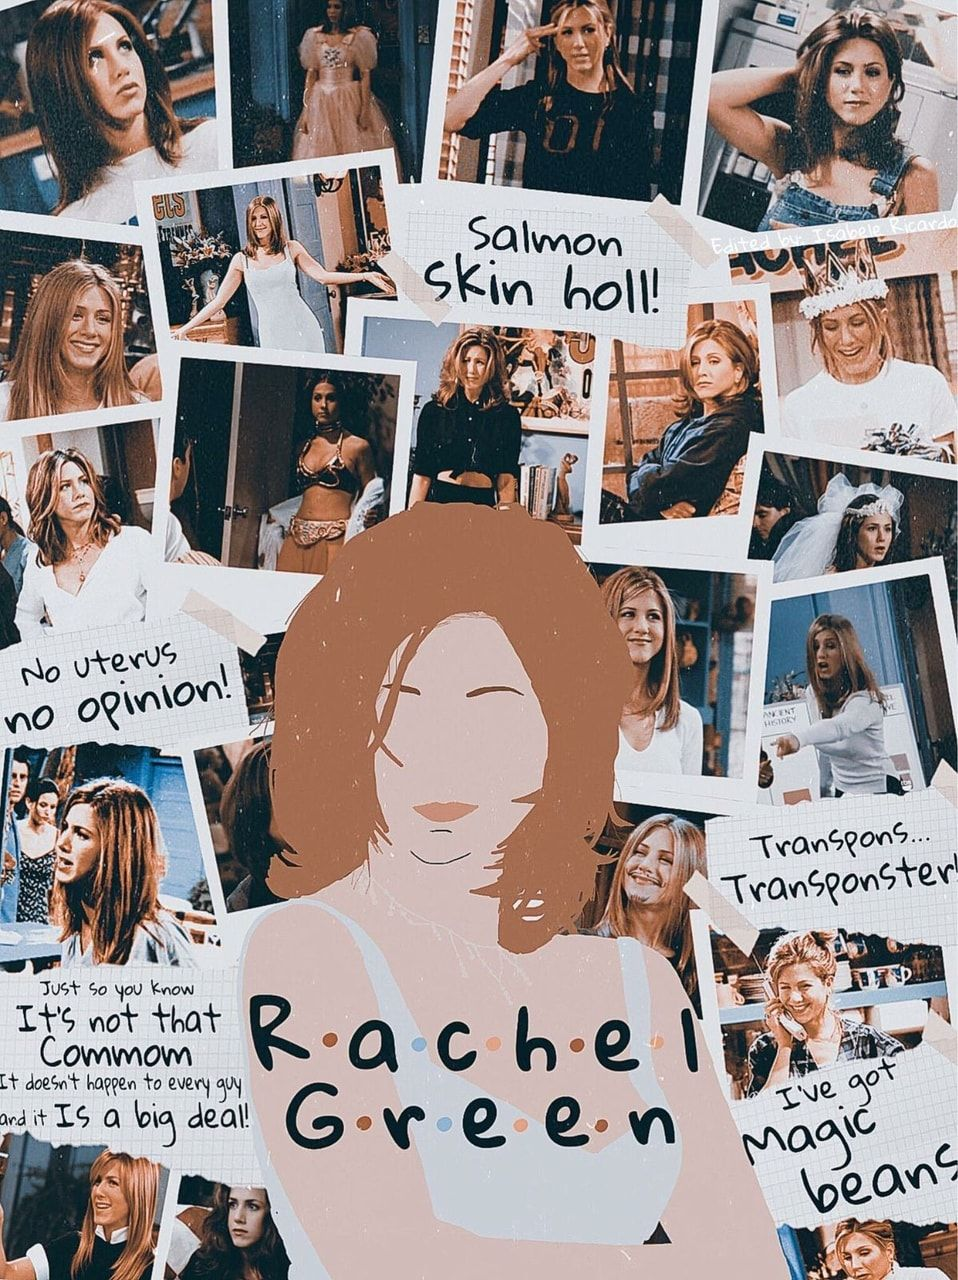 Rachel Green discovered by Ambigüedad on We Heart